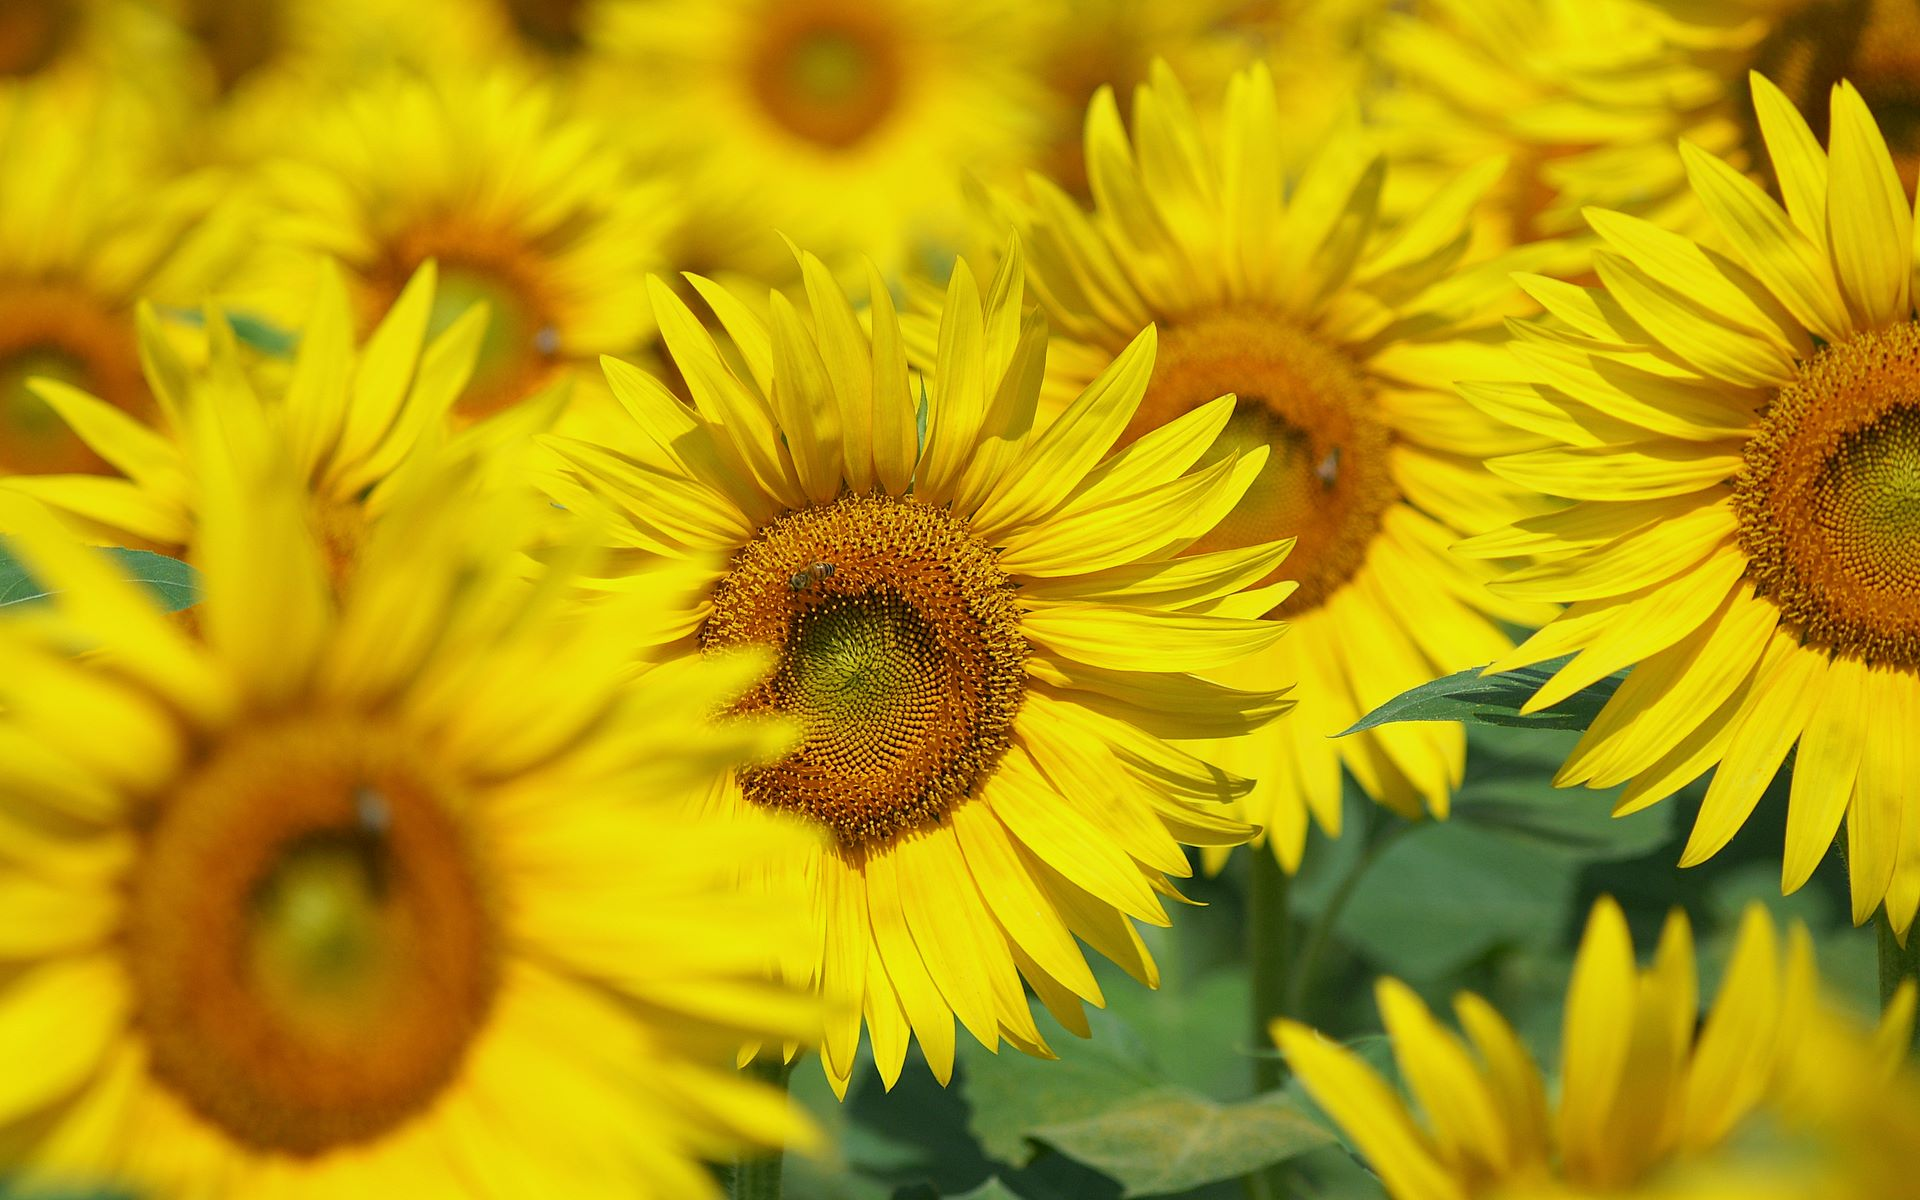 Wallpaper gratis Sunflower